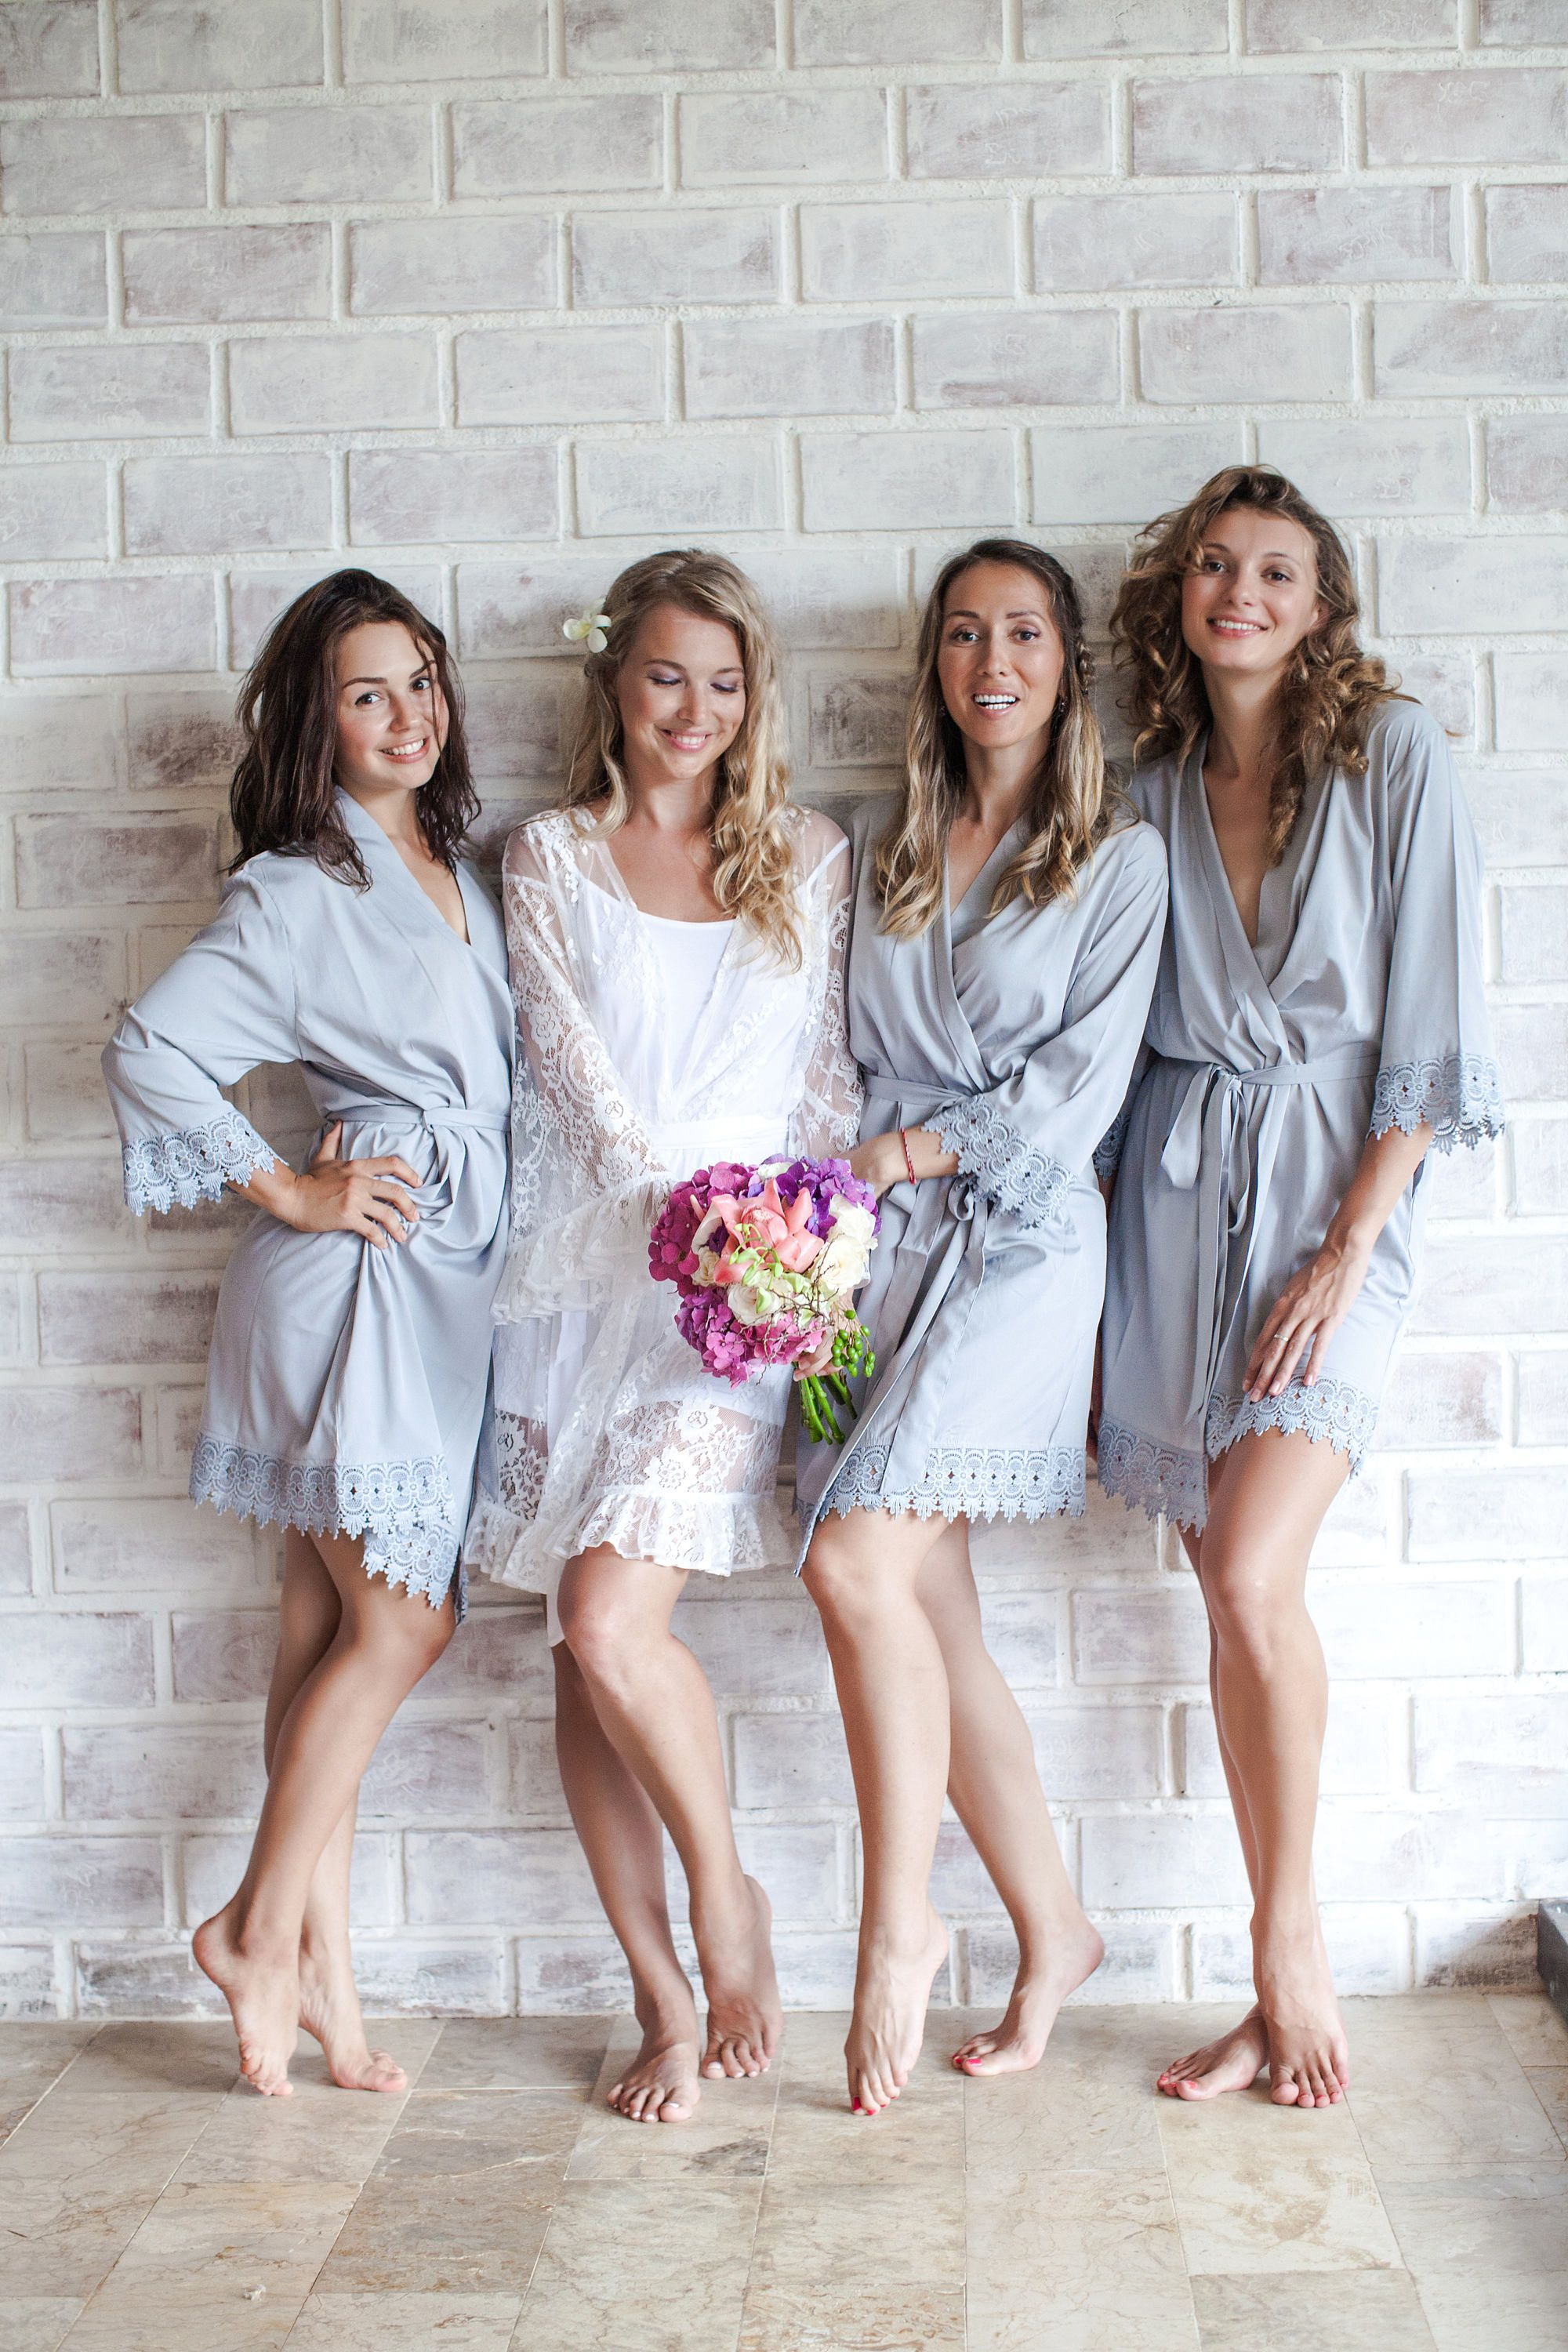 We Re Swooning Over The Color Of These Bridesmaids Robes Bridal Party Robes Dusty Blue Wedding Gettin Bridesmaid Robes Bridesmaid Robe Gift Bridal Robes